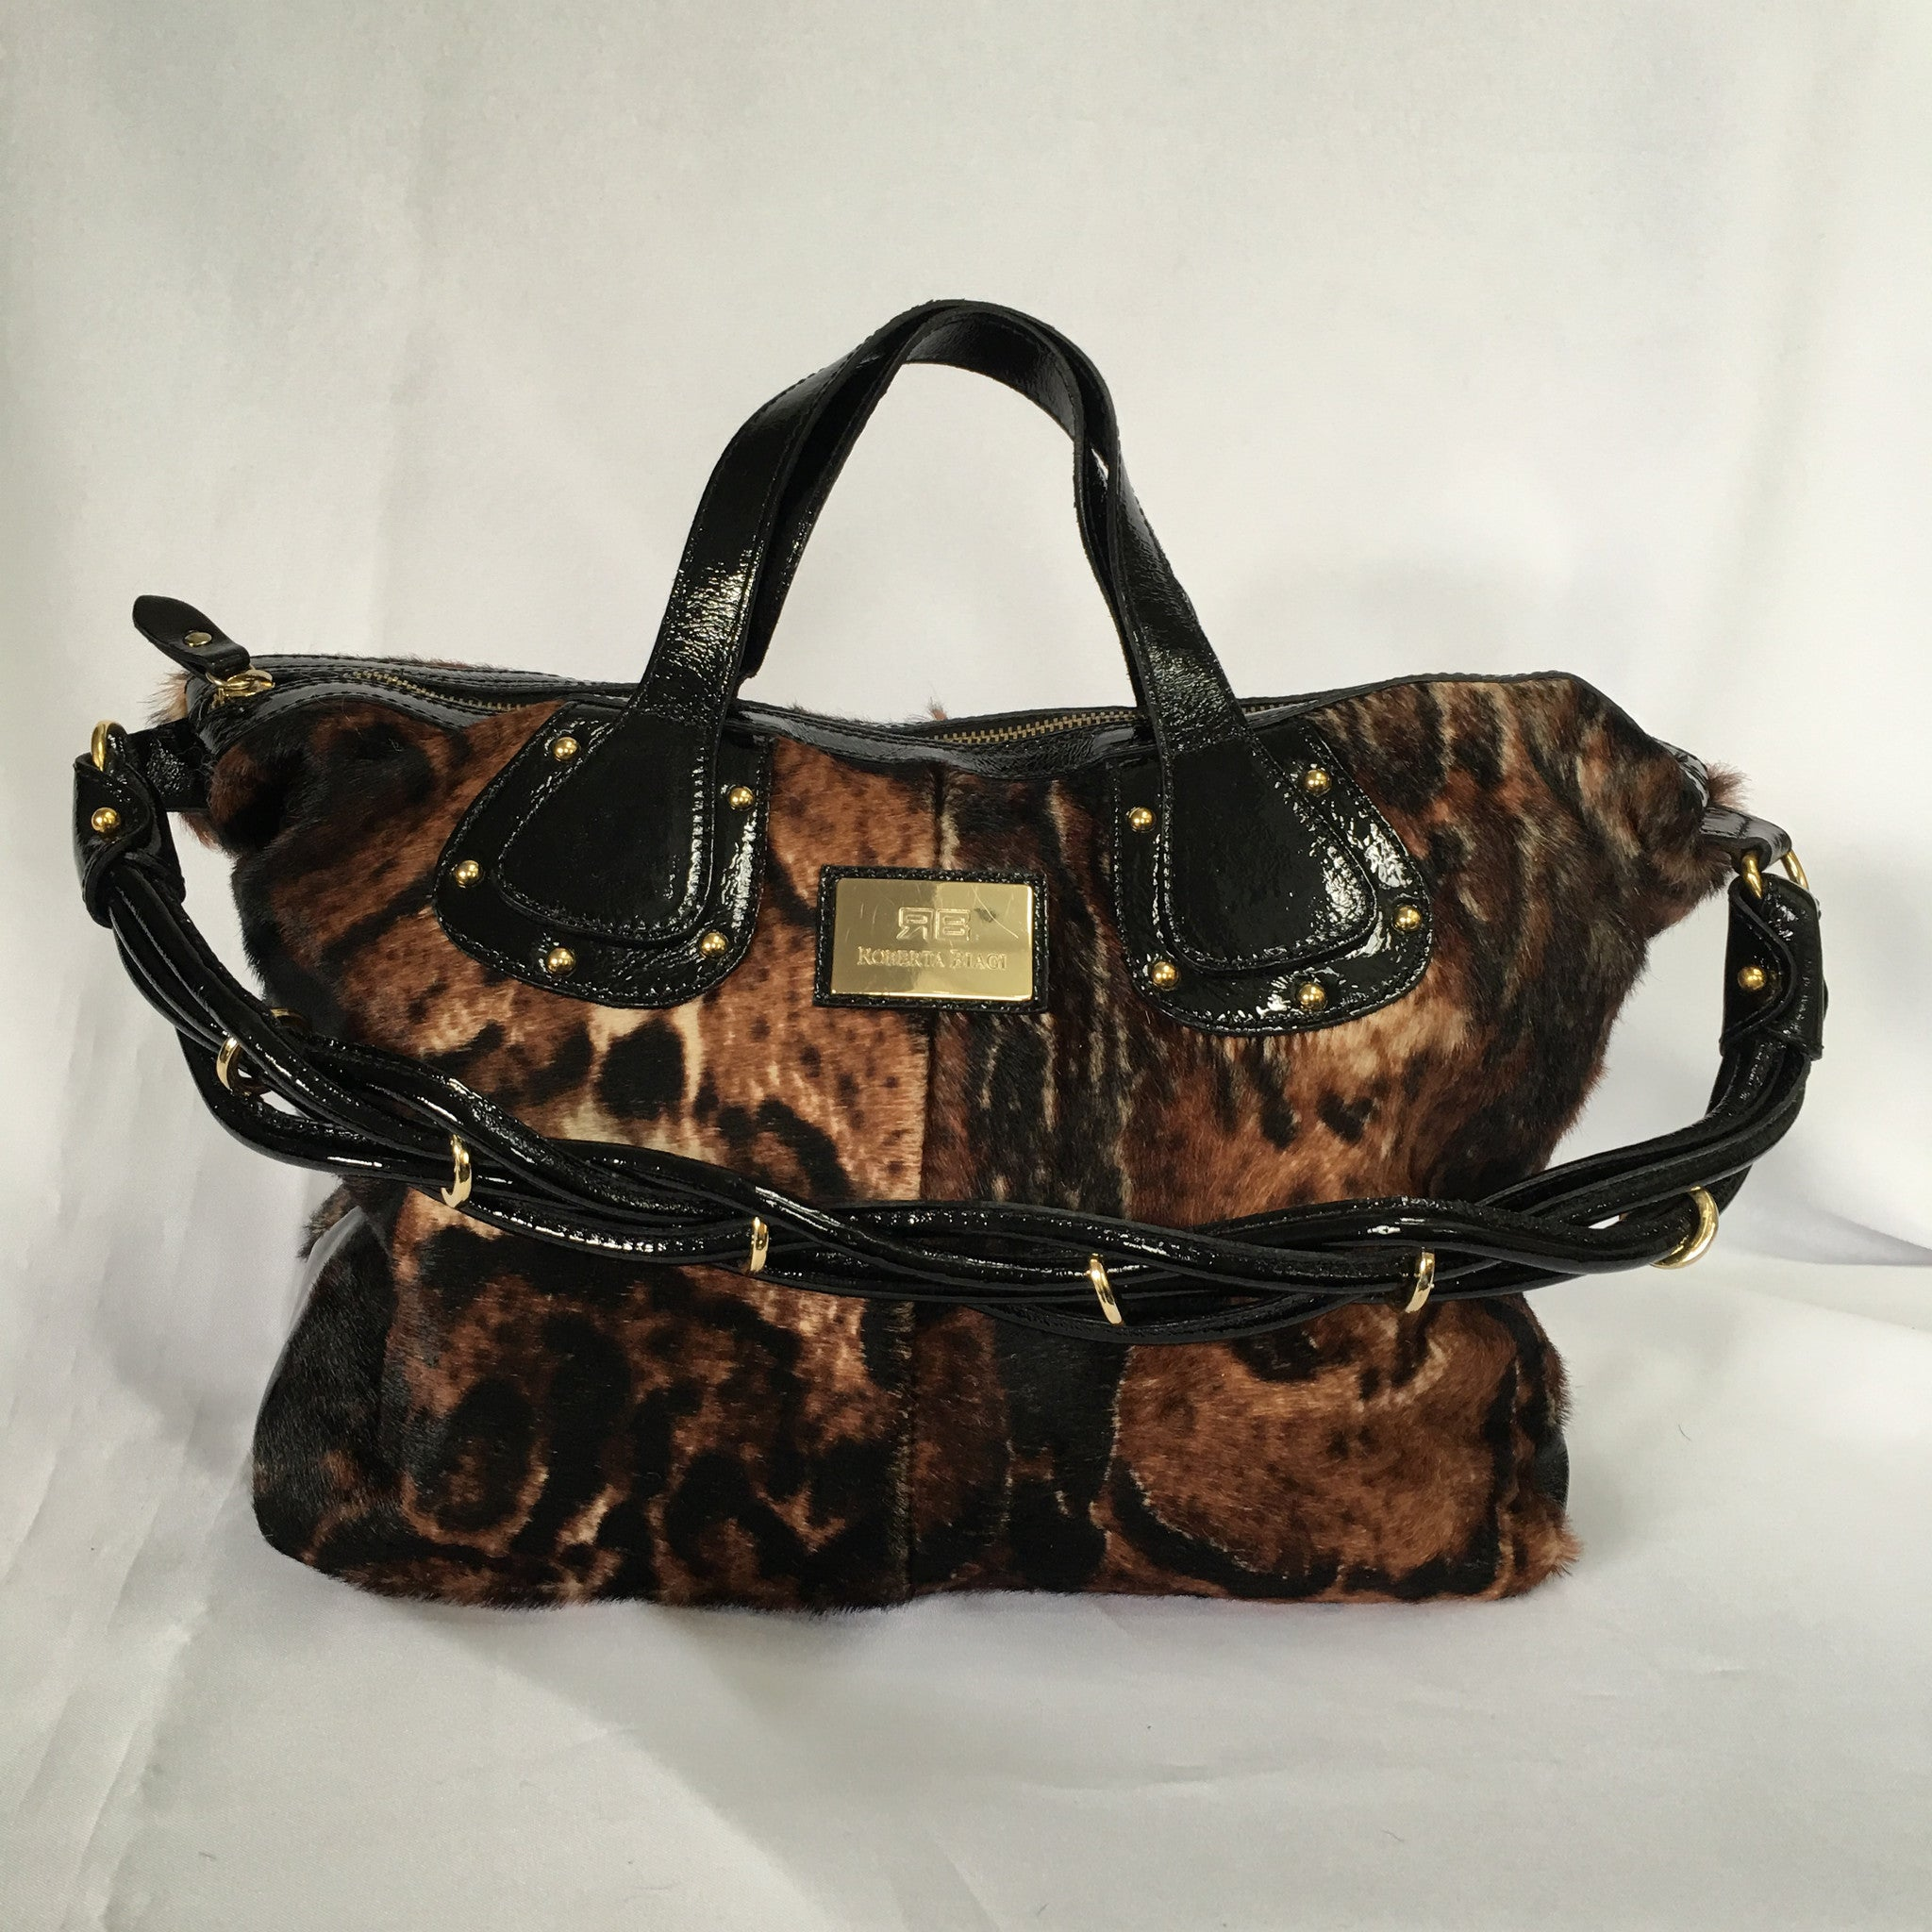 Roberta Biagi Medium Handbag